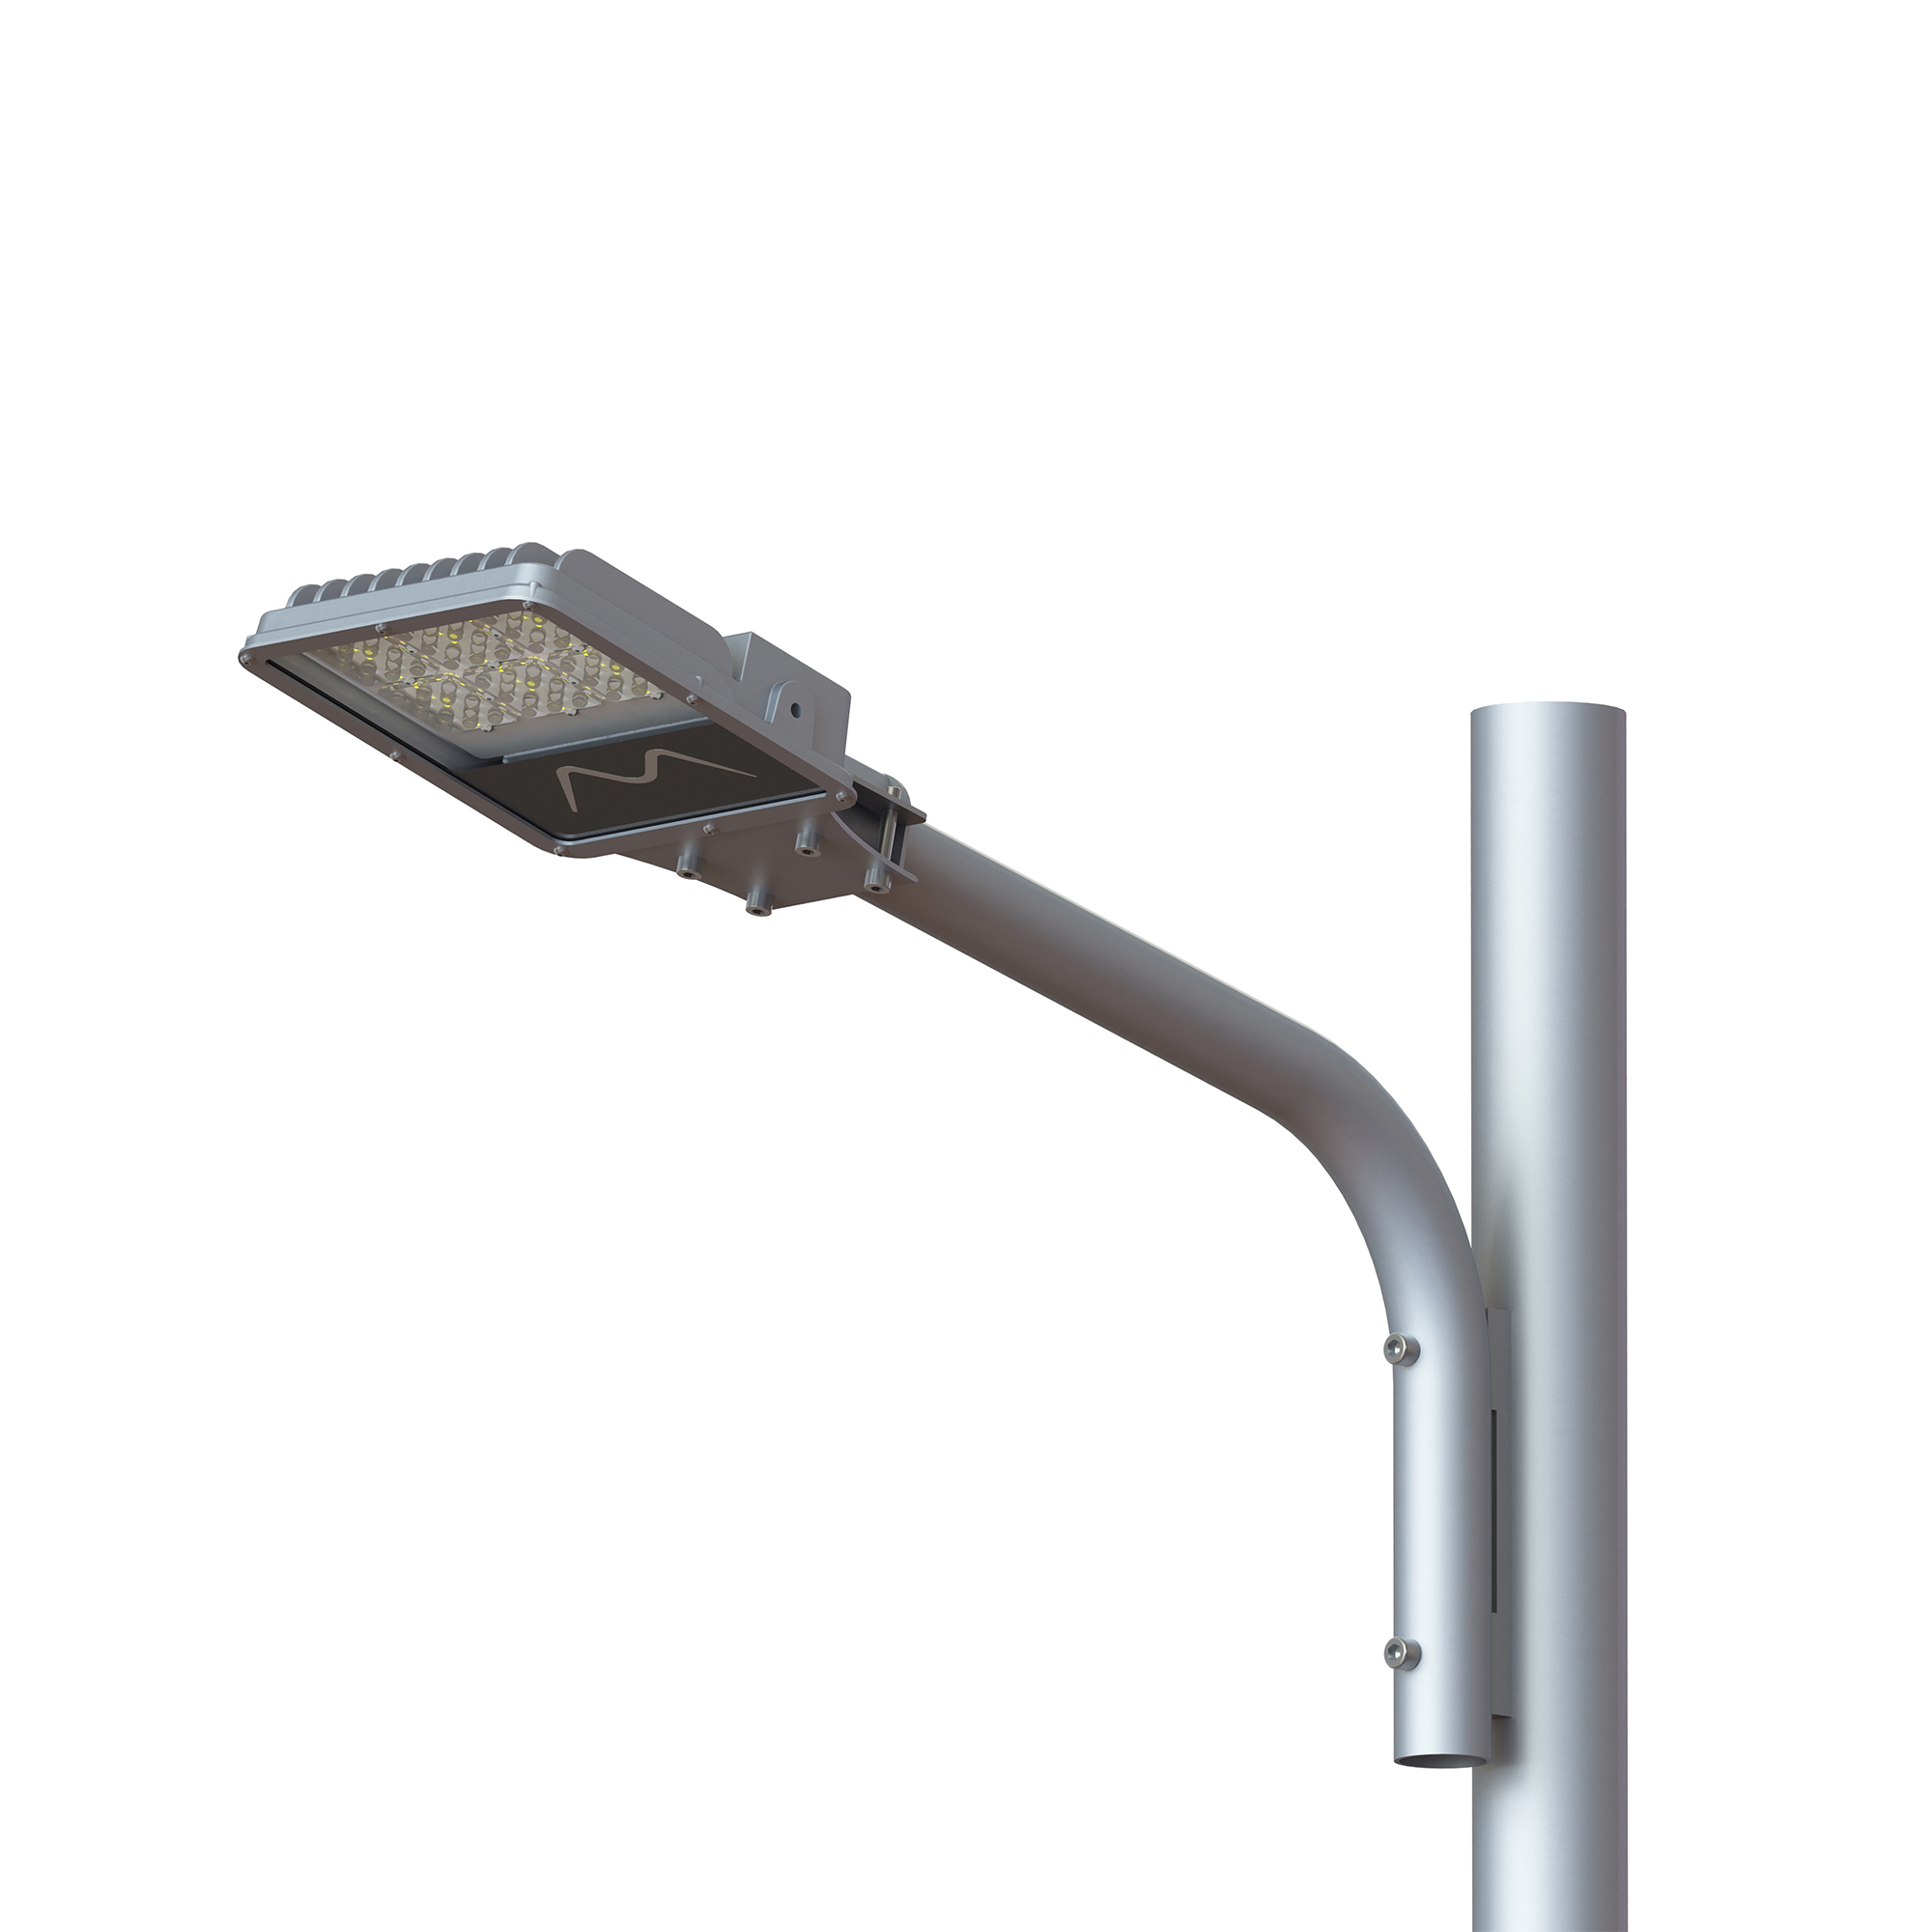 LPM-S Series Economical Led Road Fixture